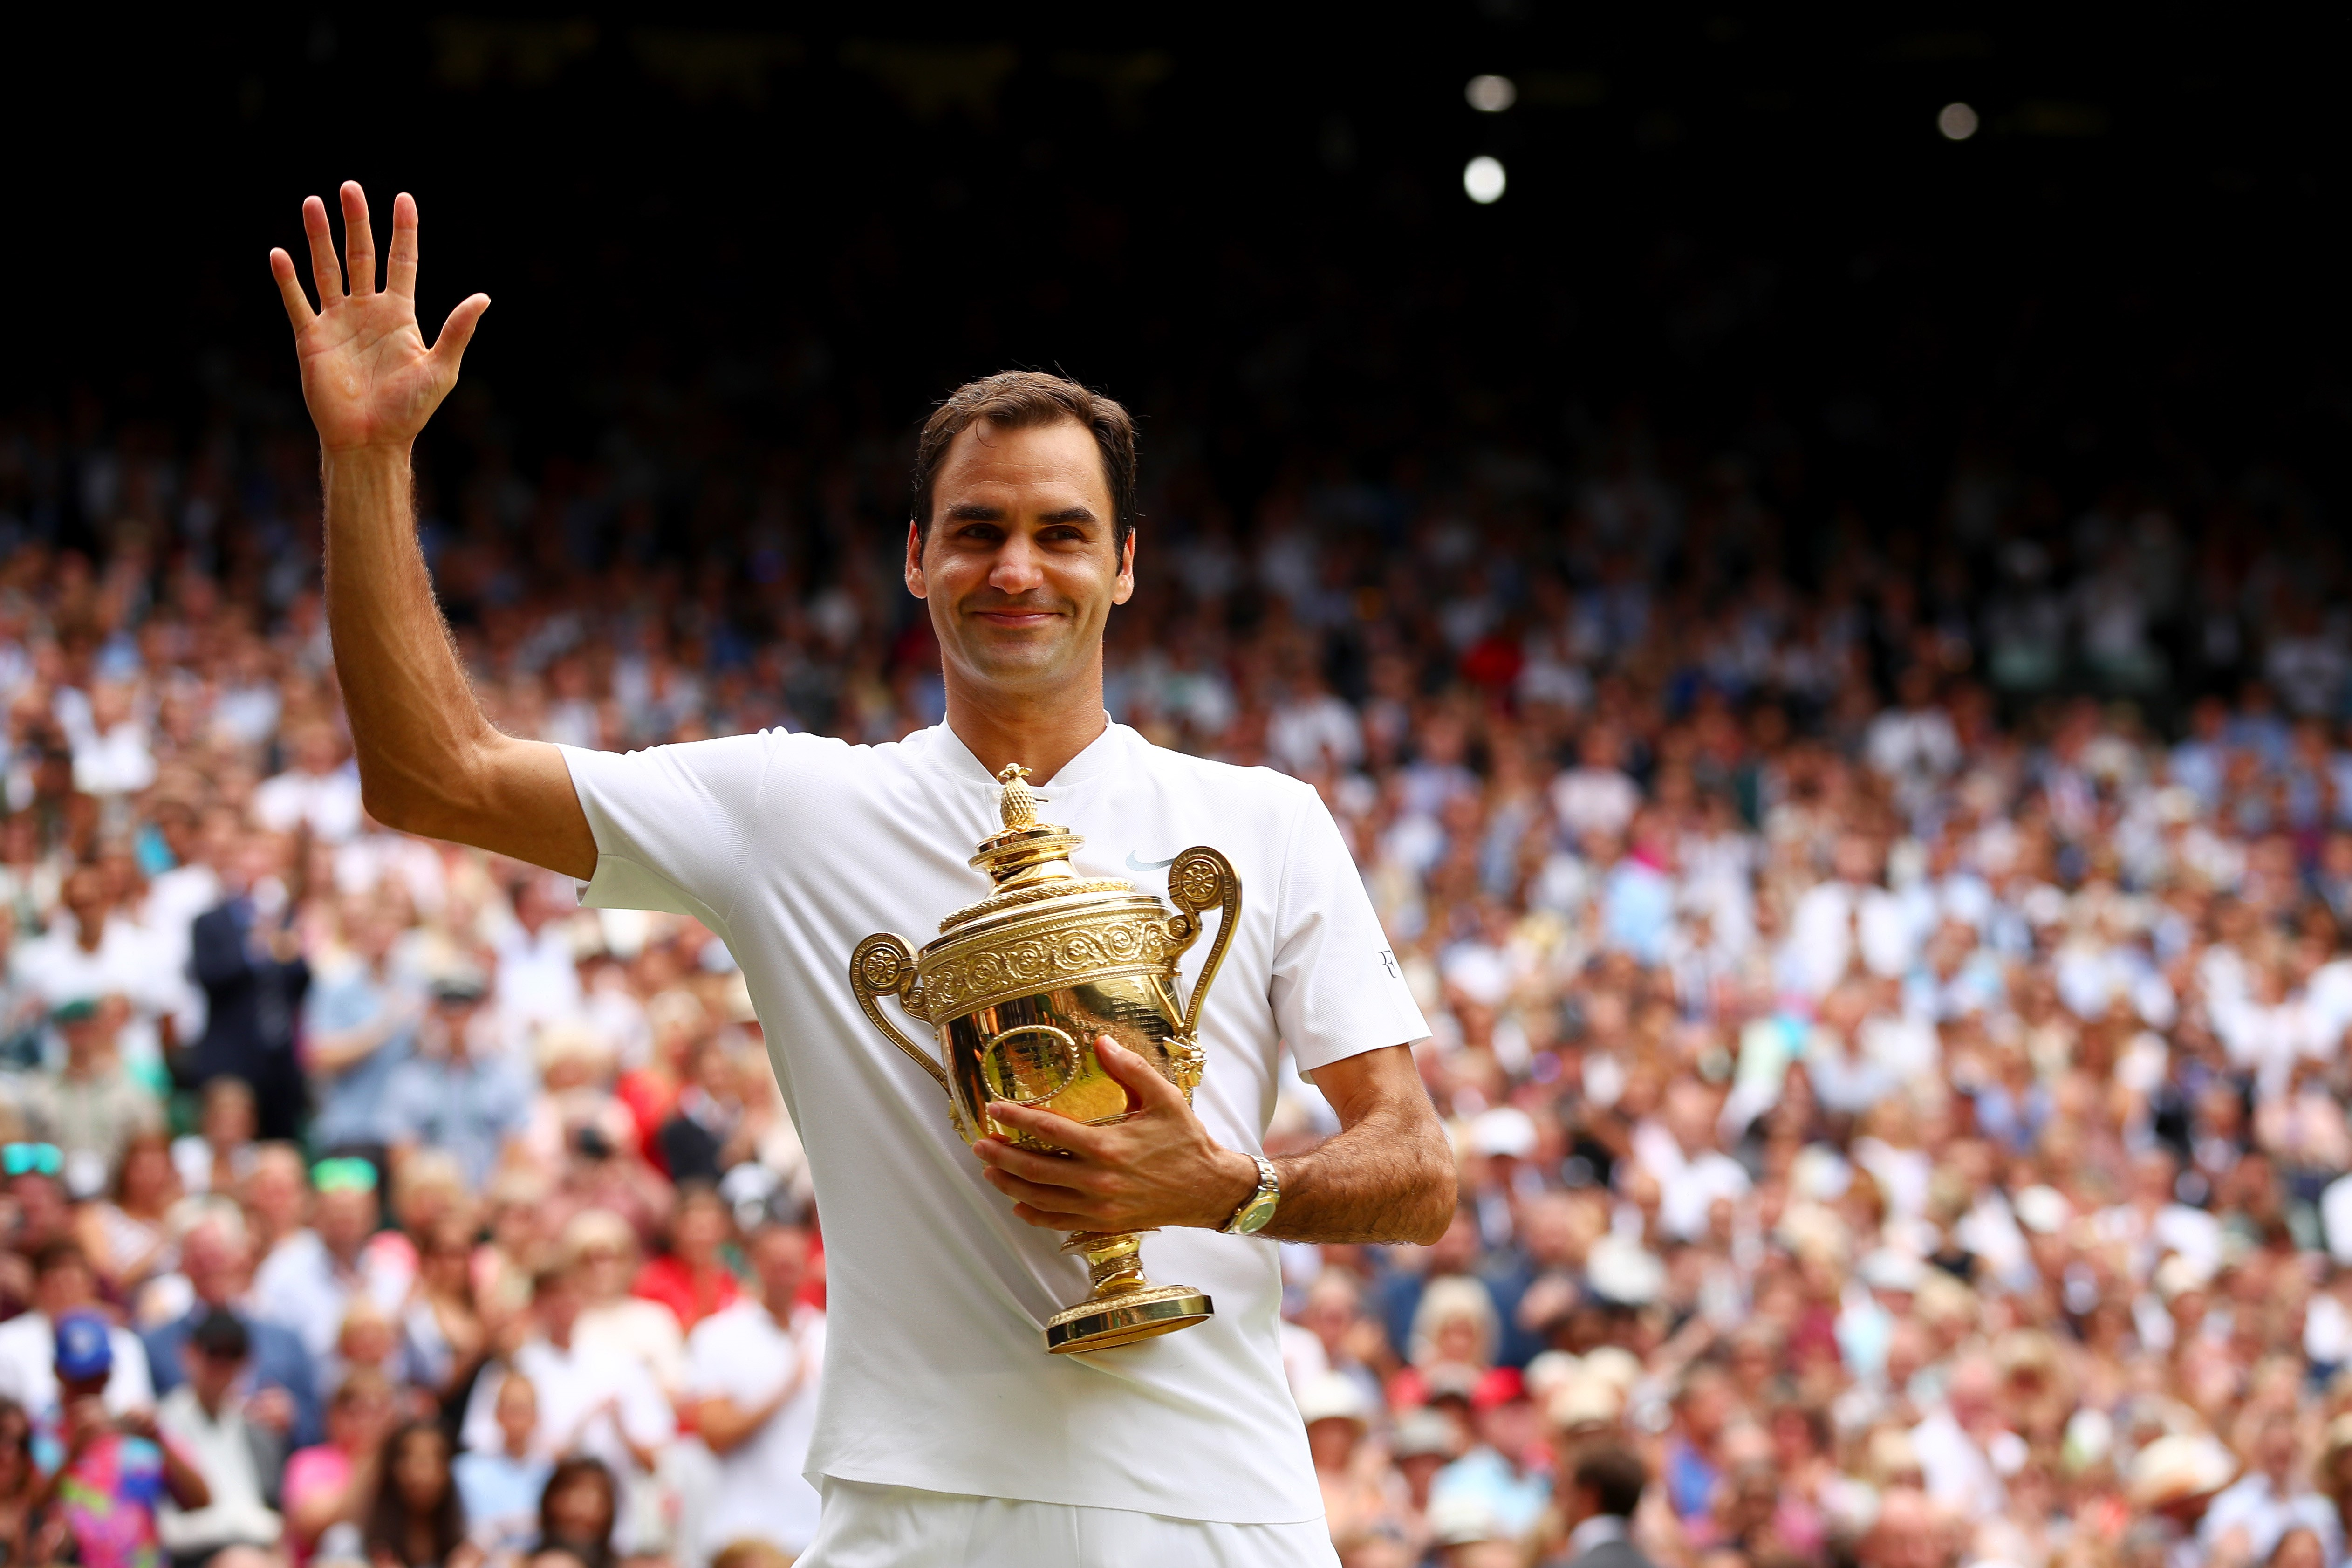 Roger Federer celebrates with the Wimbledon trophy